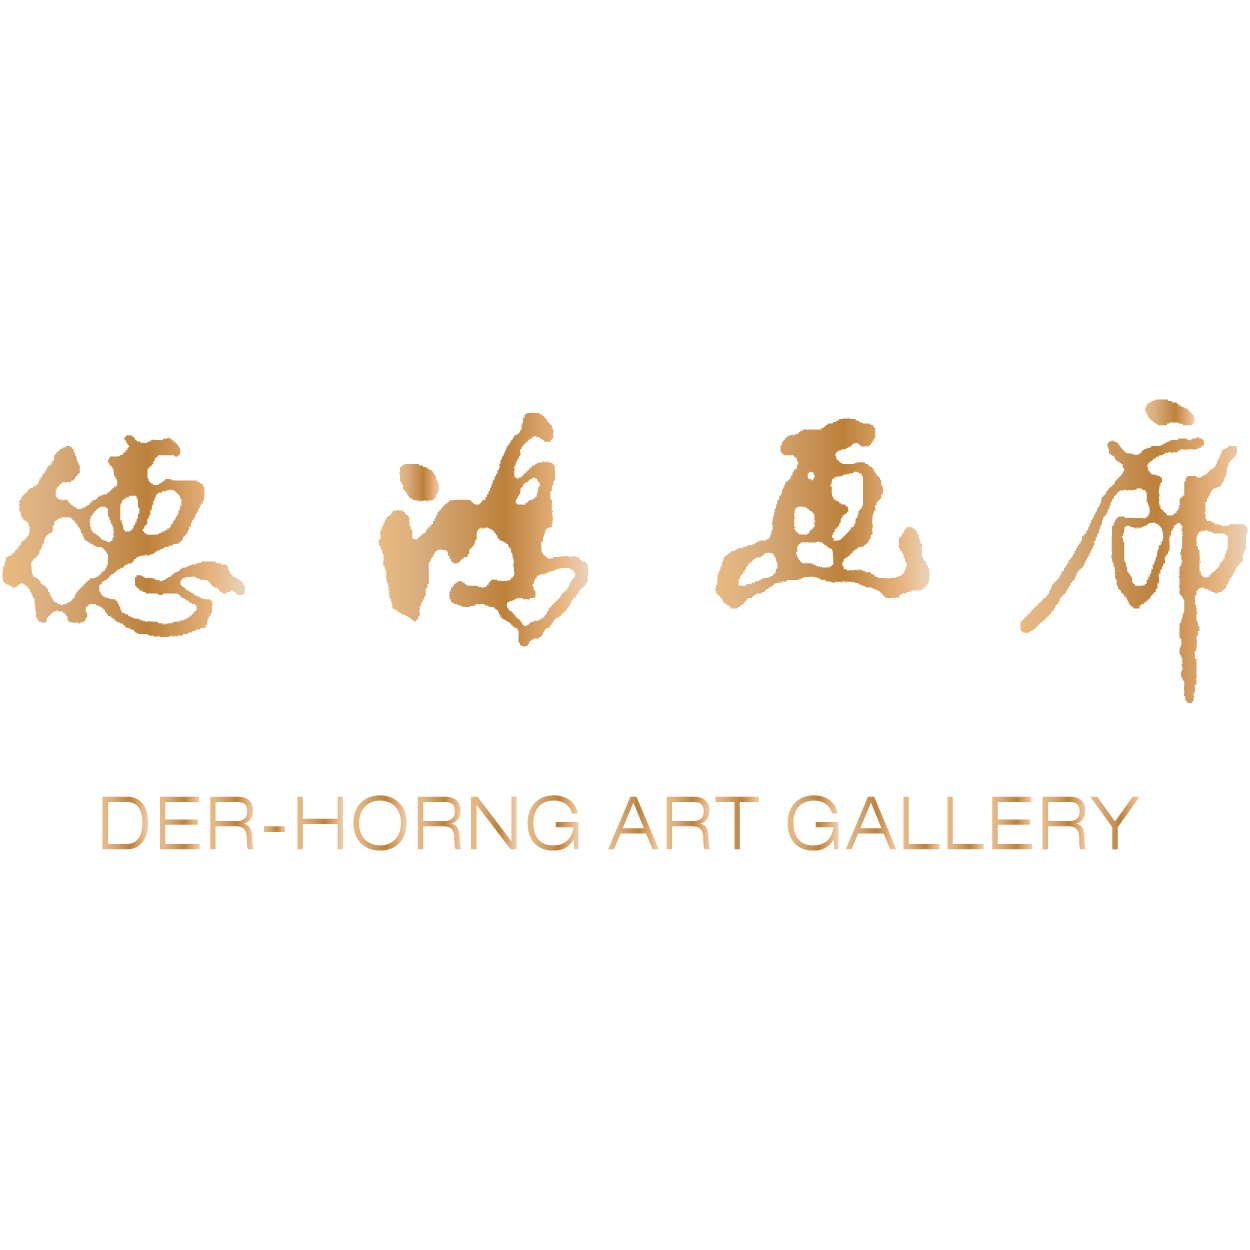 Der-Horng Art Gallery